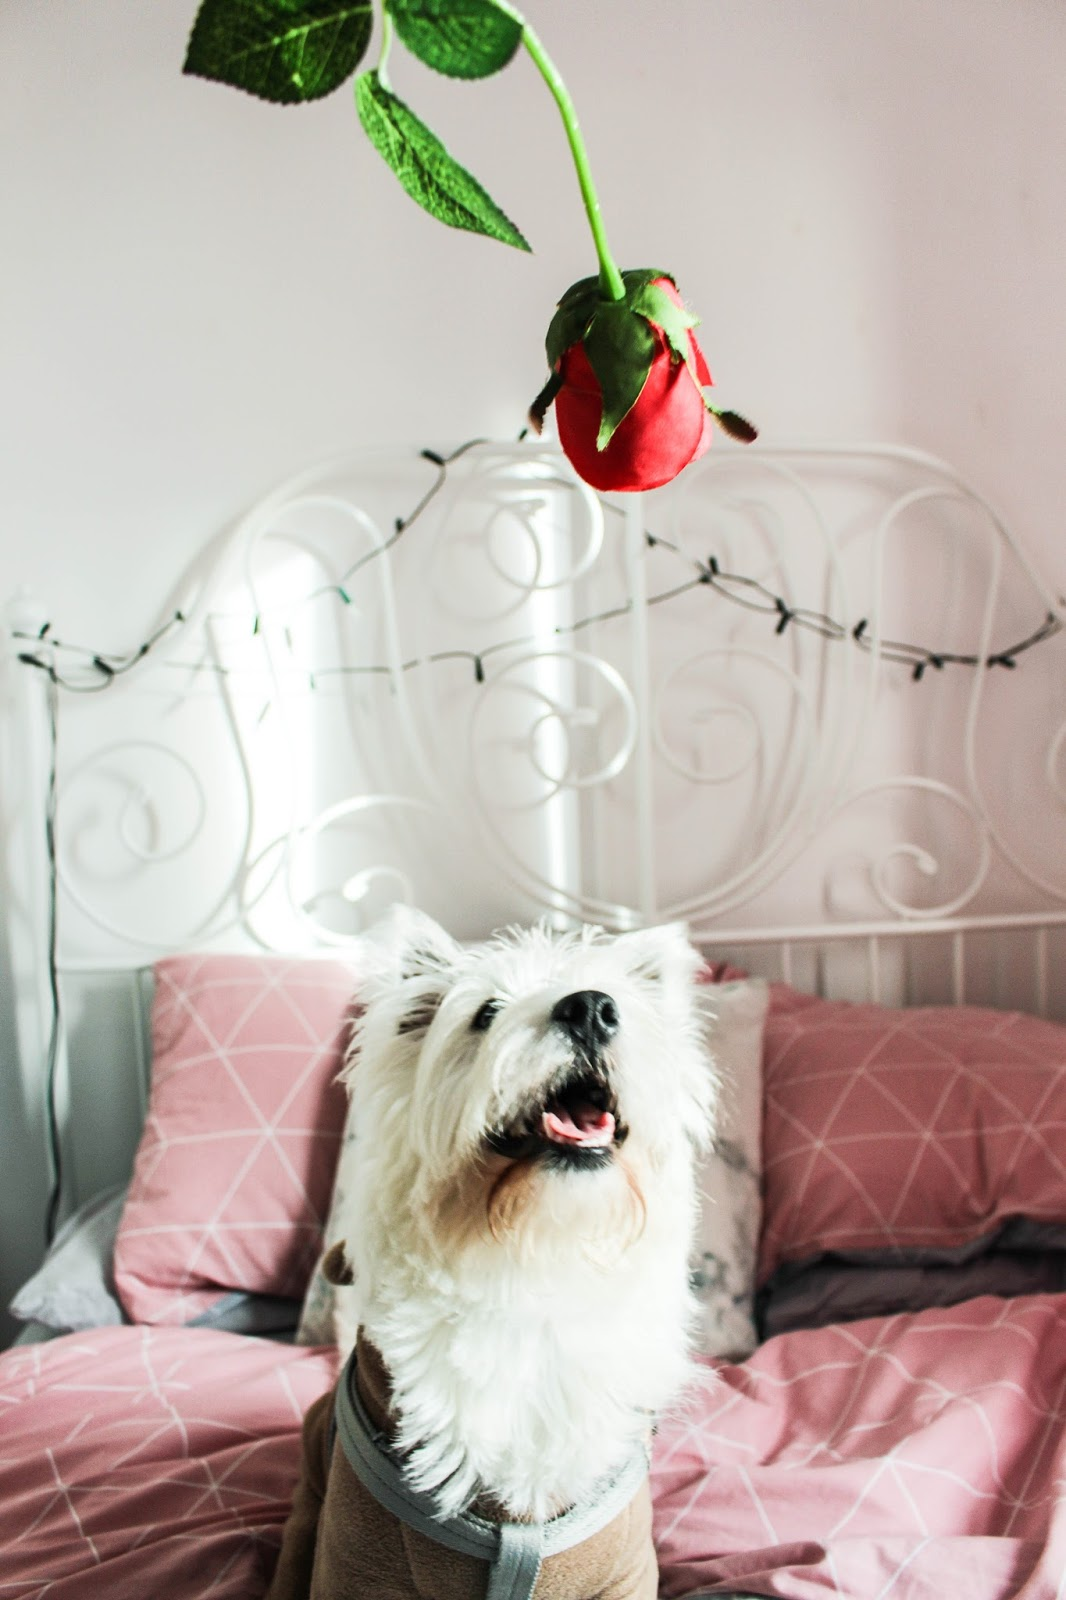 7 Ideas For A Romantic Night In - Shay Kennedy